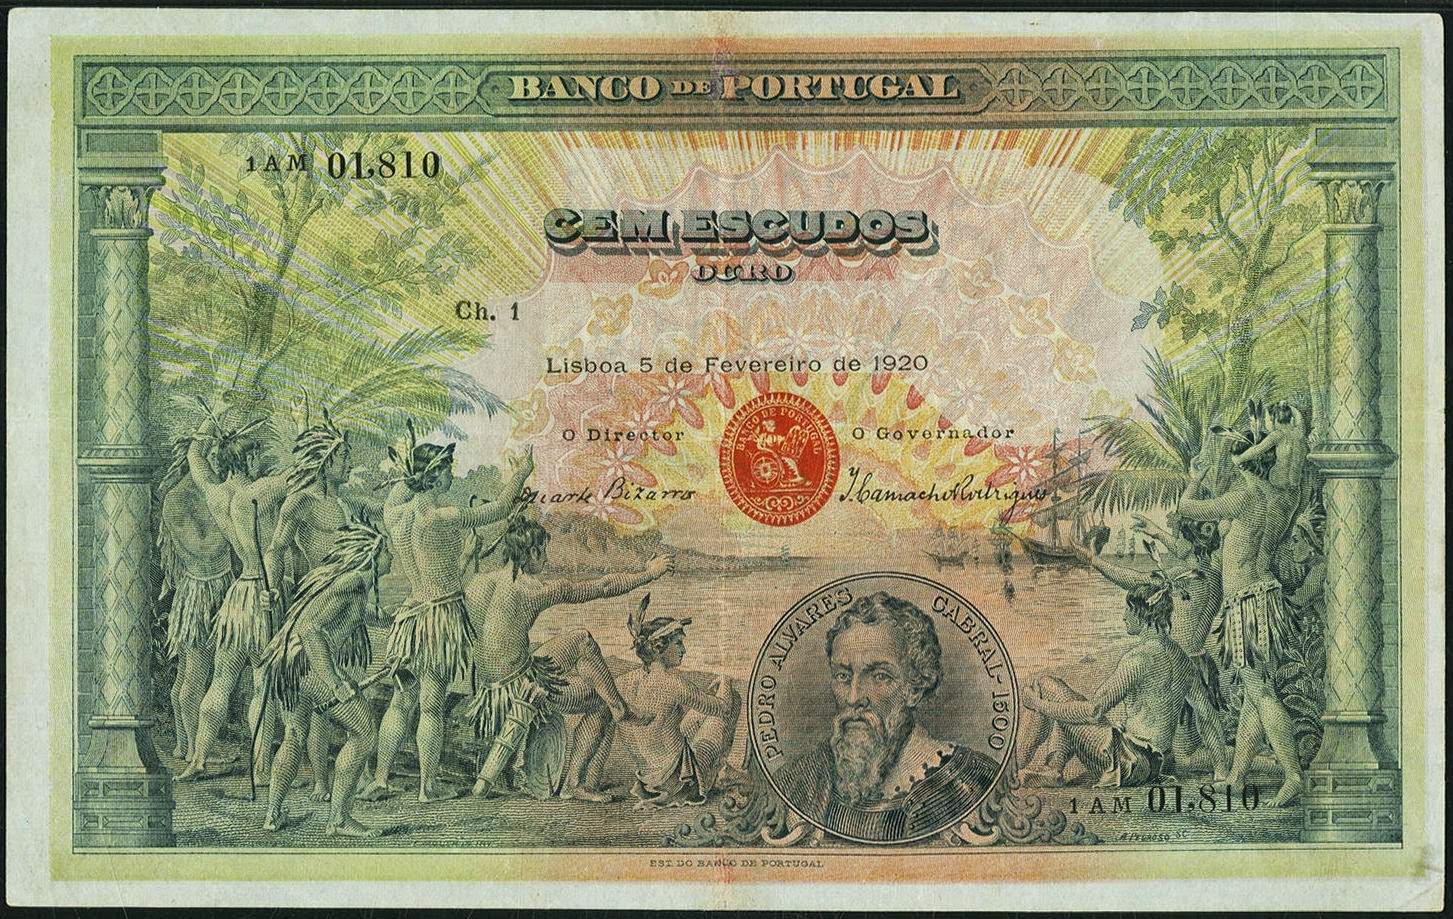 Portugal 100 Escudos banknote 1920 Discovery of Brazil by Pedro Alvares Cabral